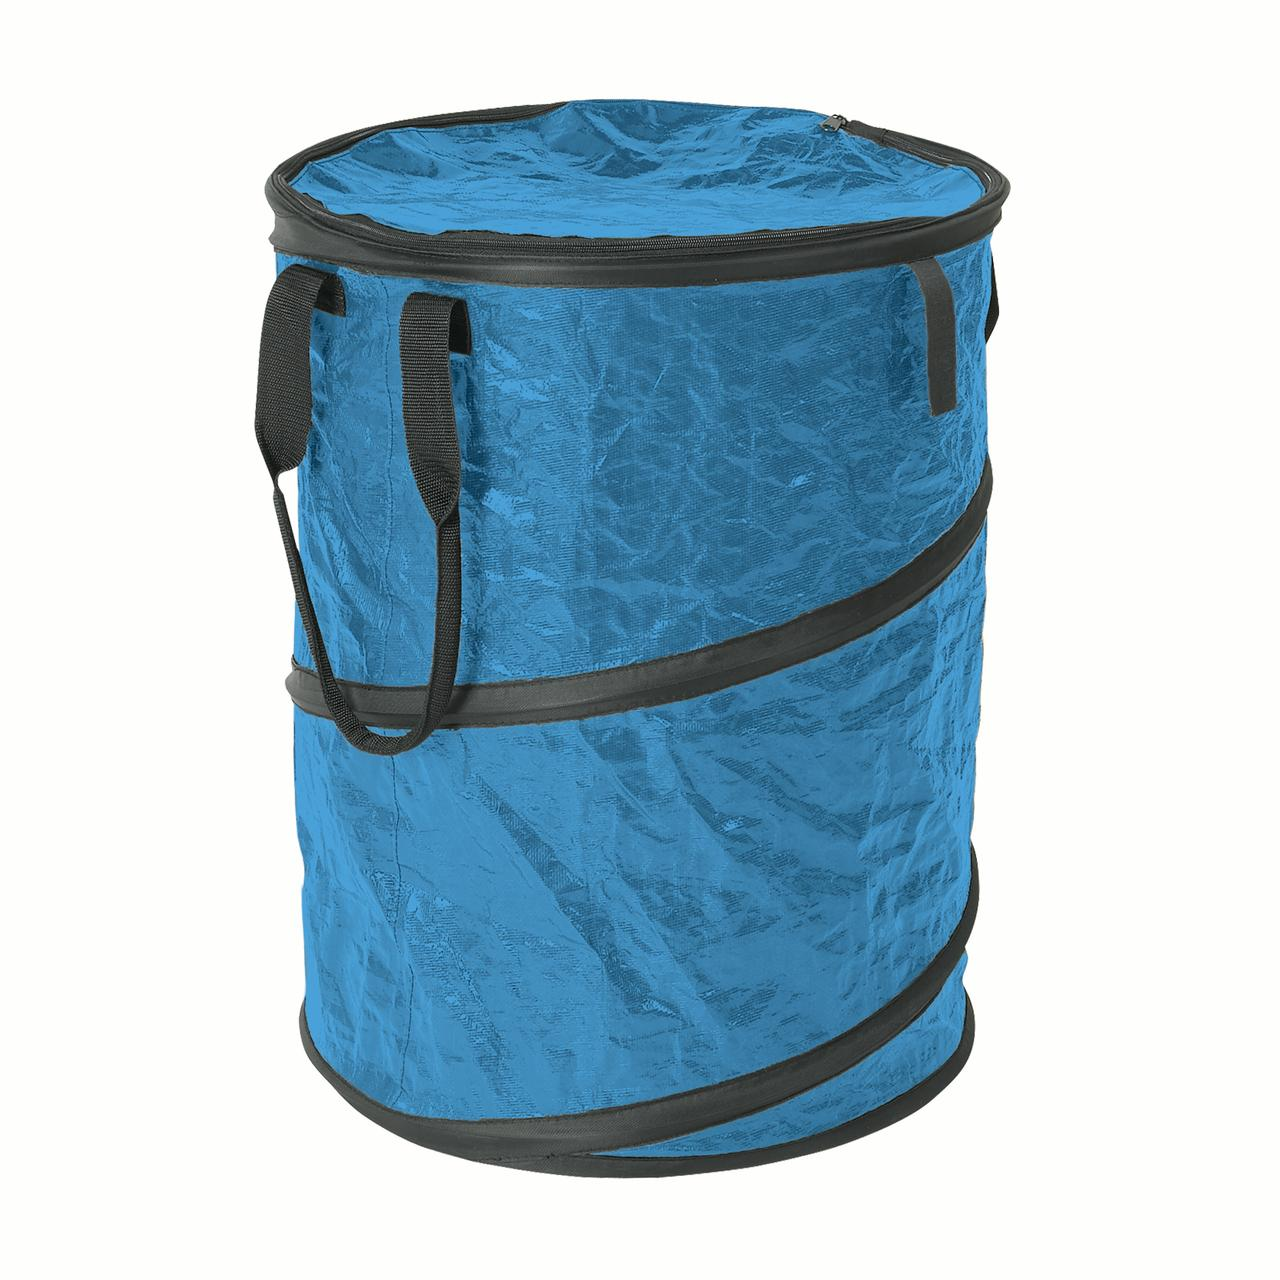 Stansport Collapsible Campsite Carry - All / Trash Can - Blue